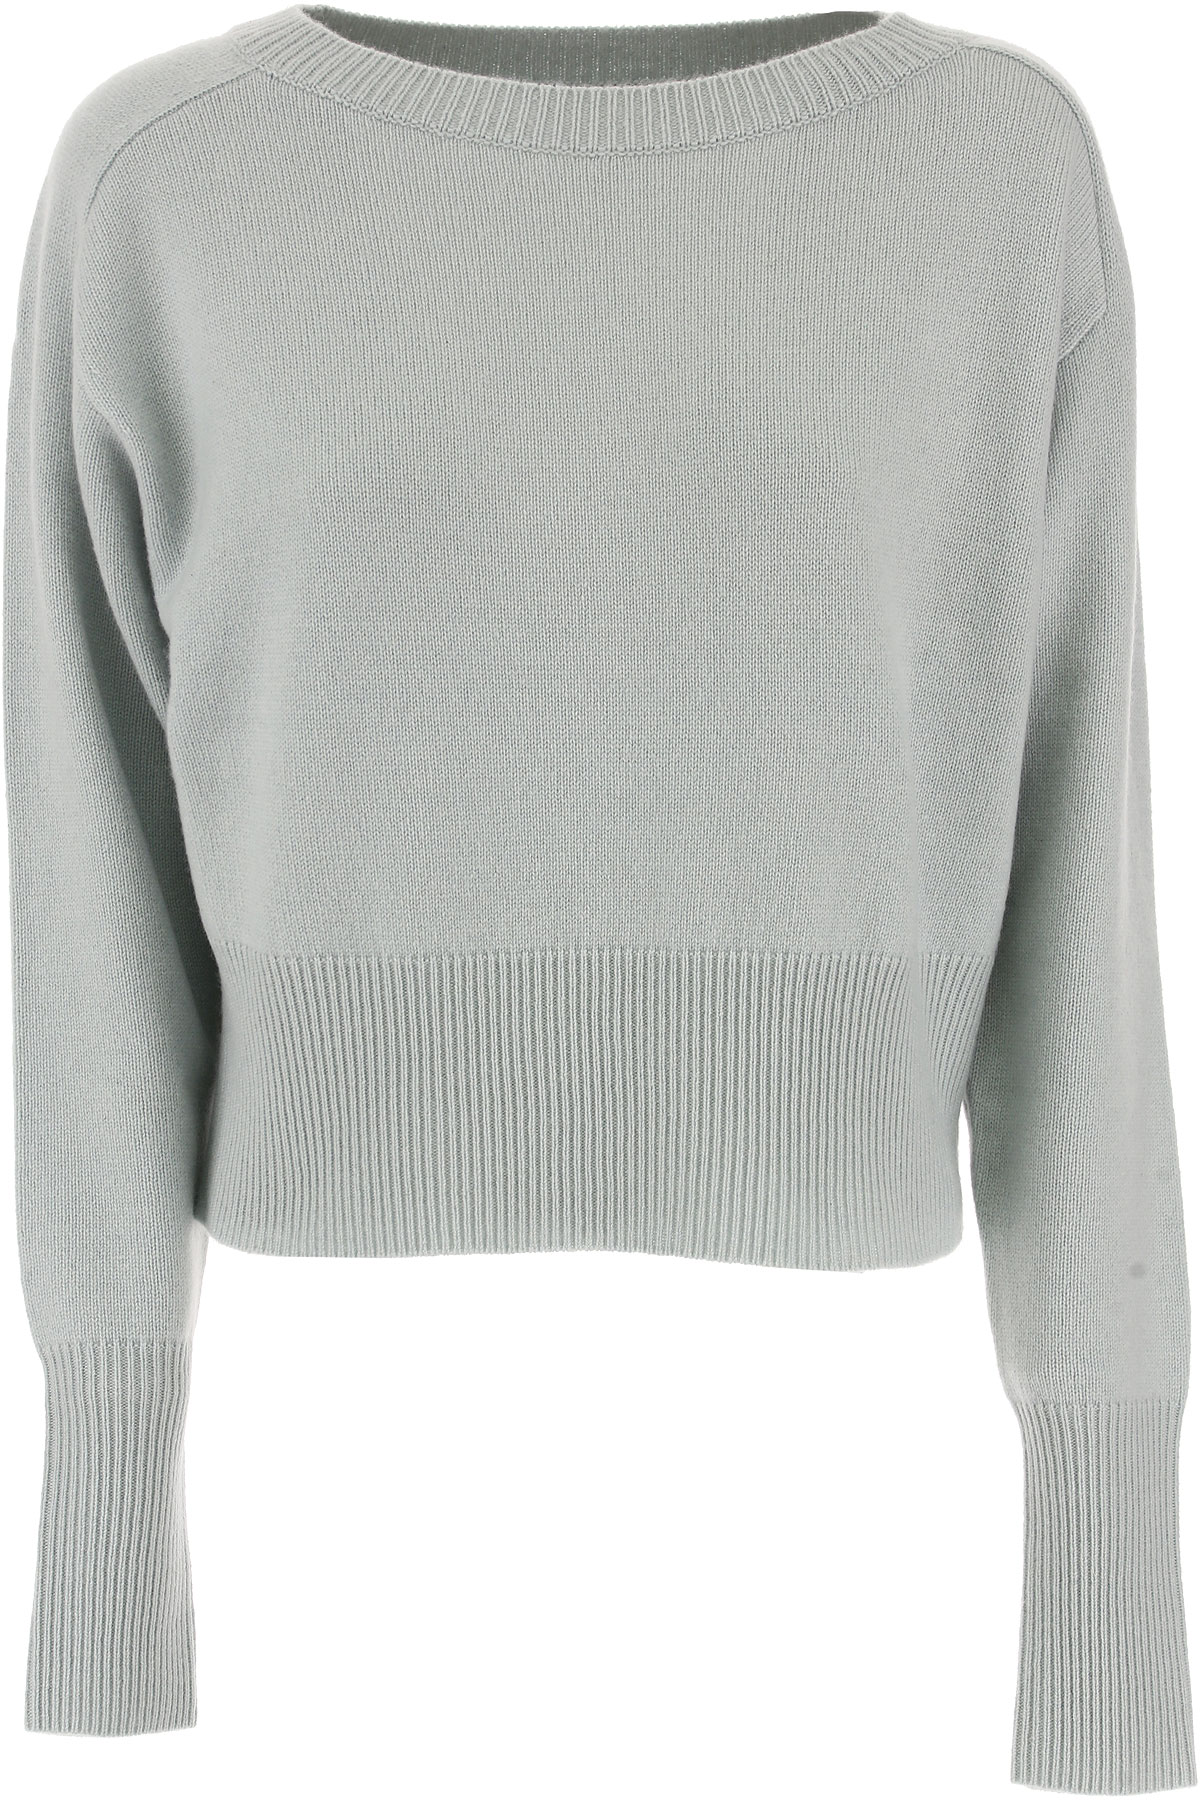 Image of Theory Sweater for Women Jumper On Sale, Winter Green, Cashmere, 2017, 2 4 6